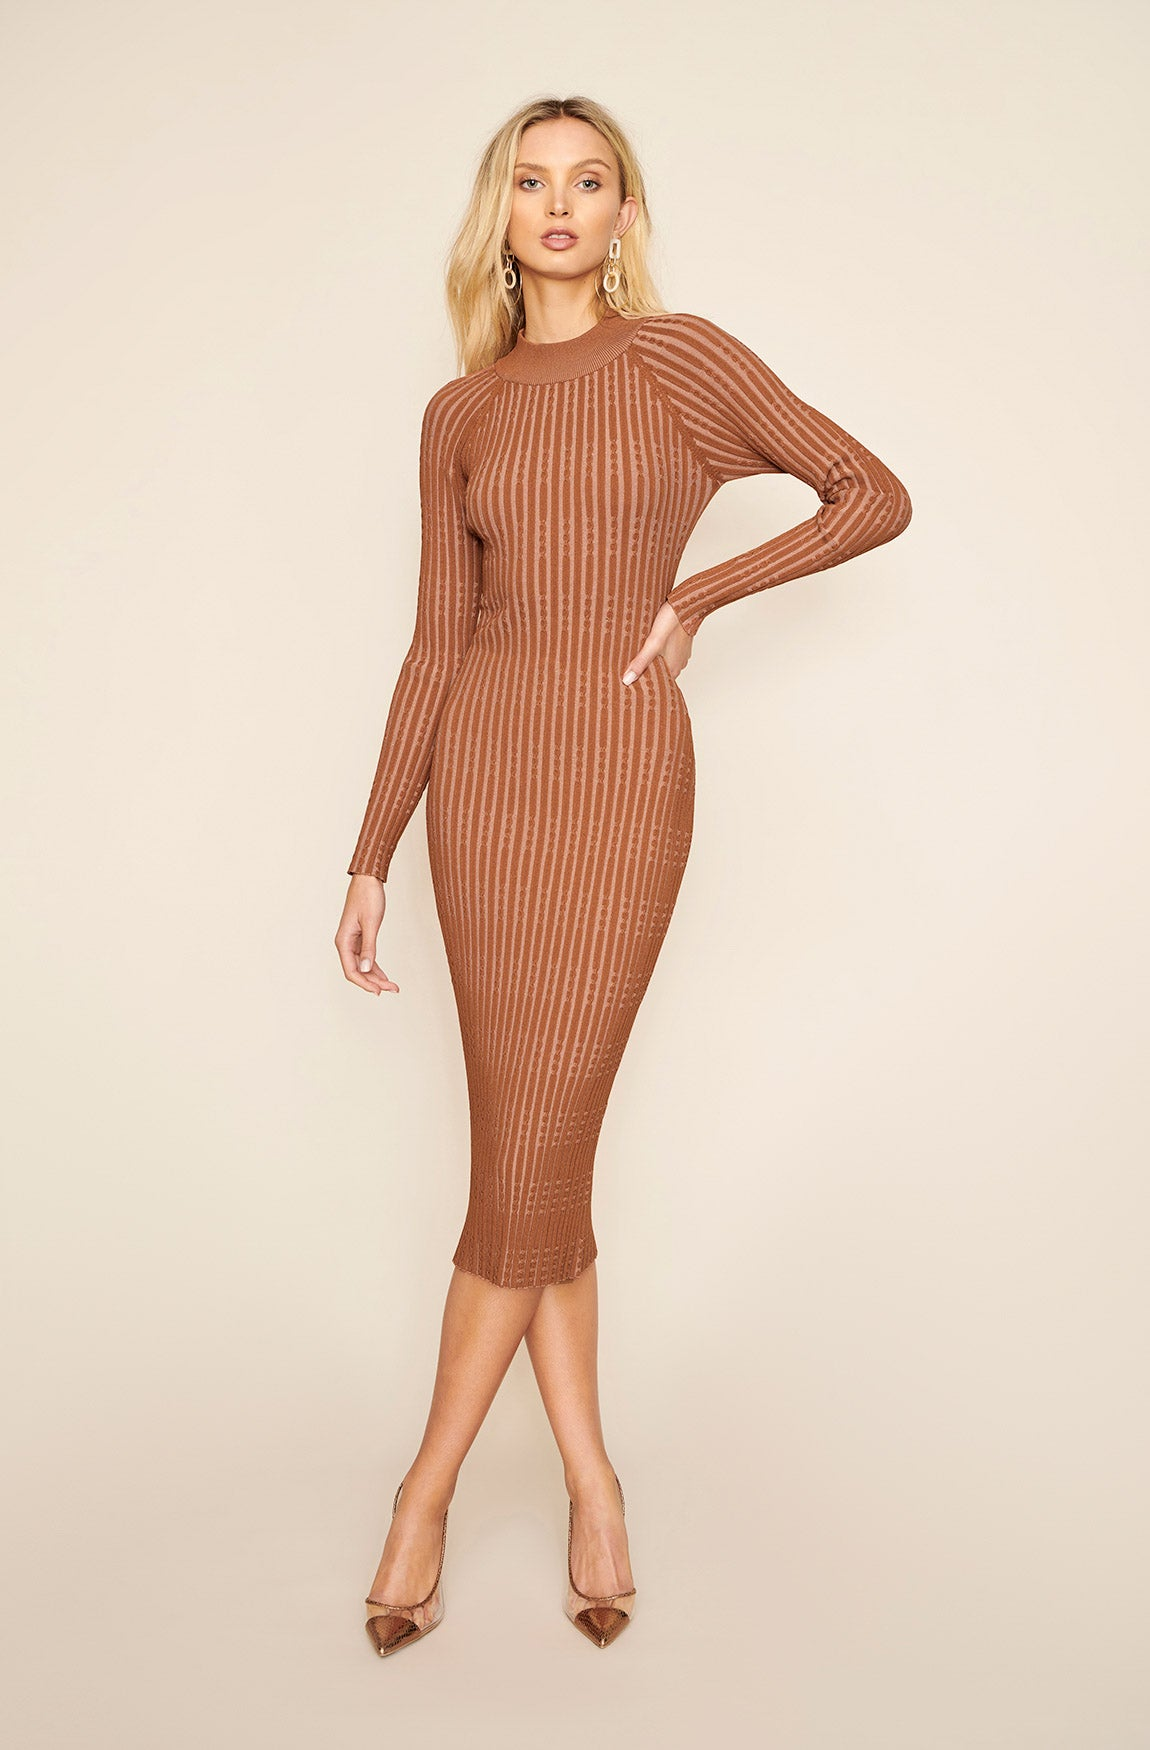 BELIEVER KNIT DRESS